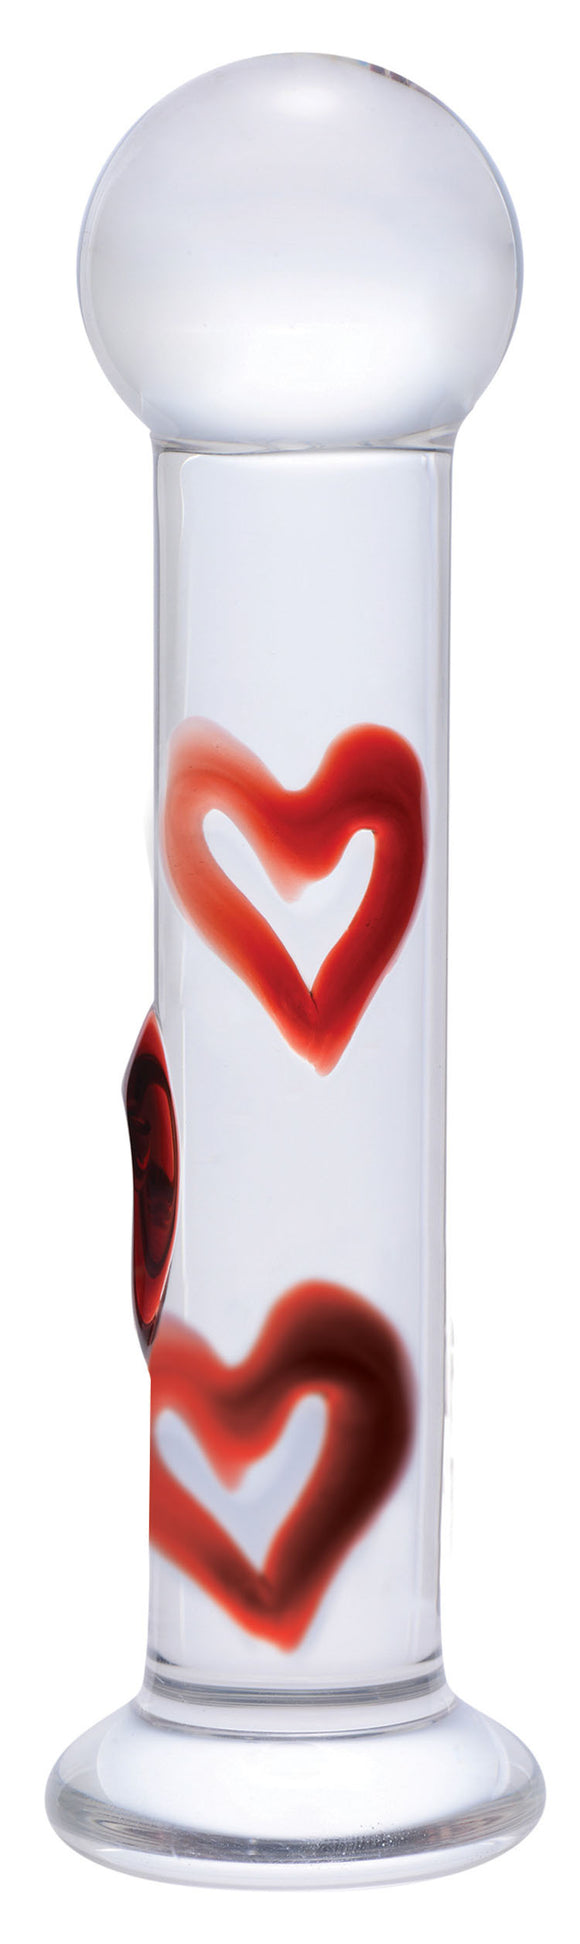 Lil Hearts Glass Plug With Raised Heart Texture PRSM-AE806